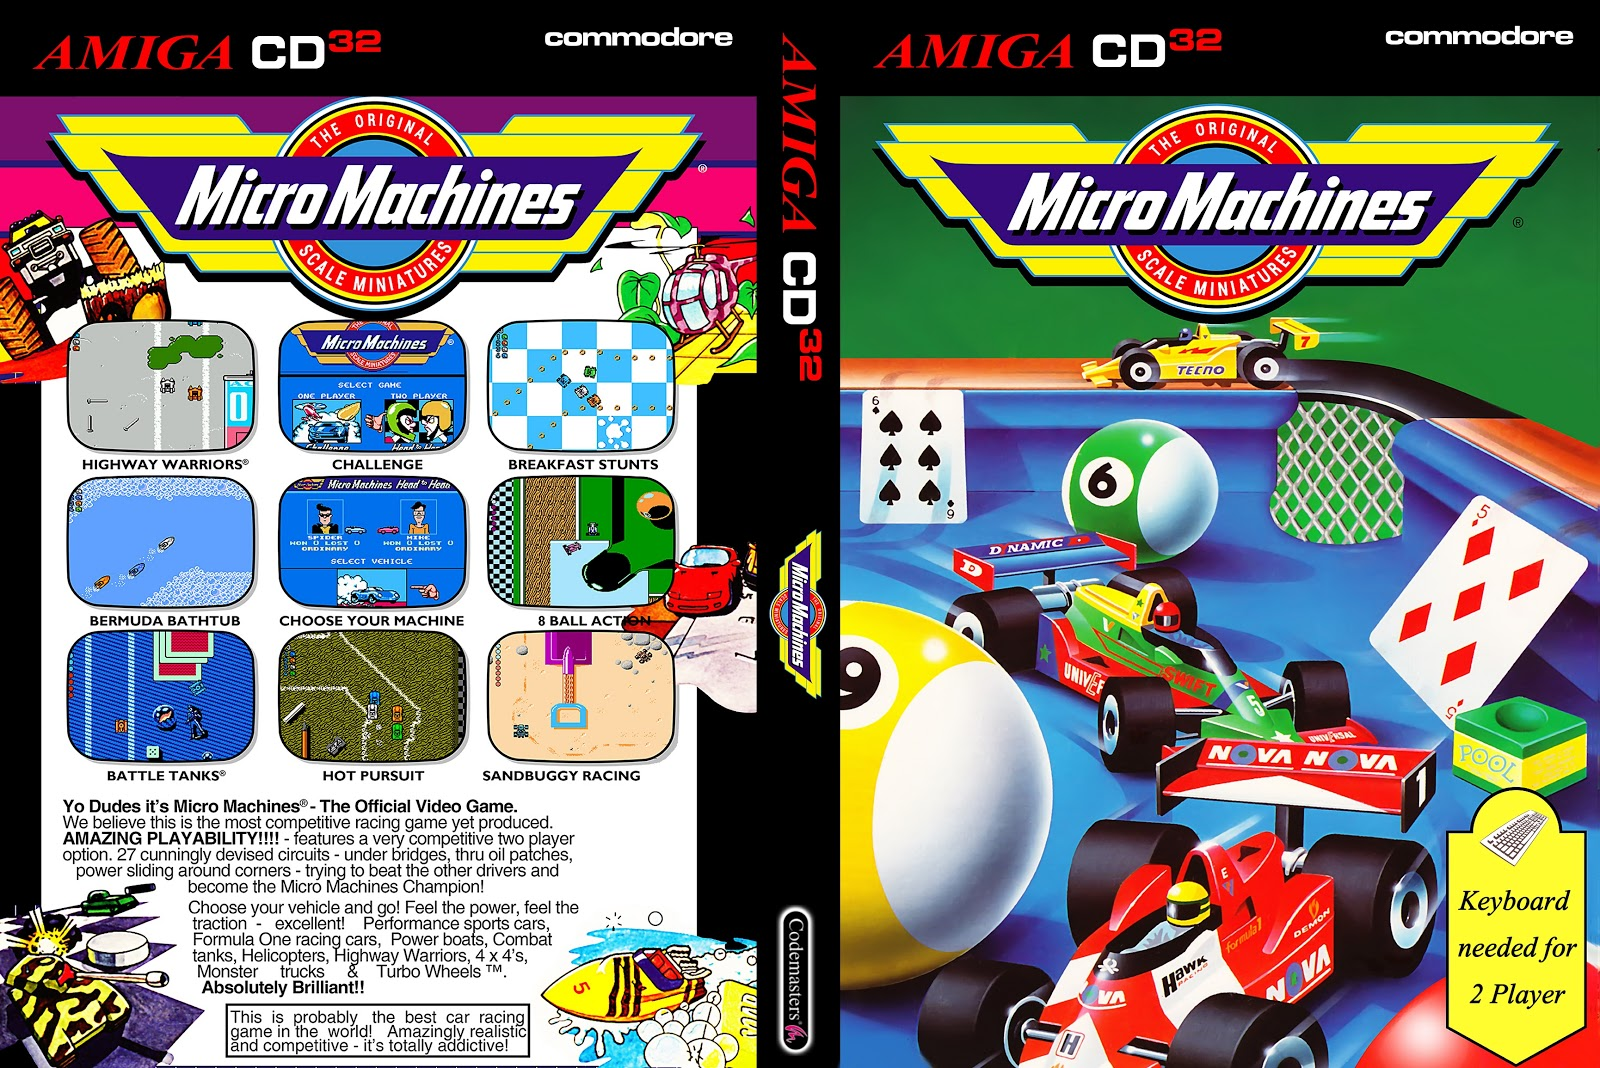 [Jeu] Suite d'images !  - Page 5 Micro_machinesCD32Cover